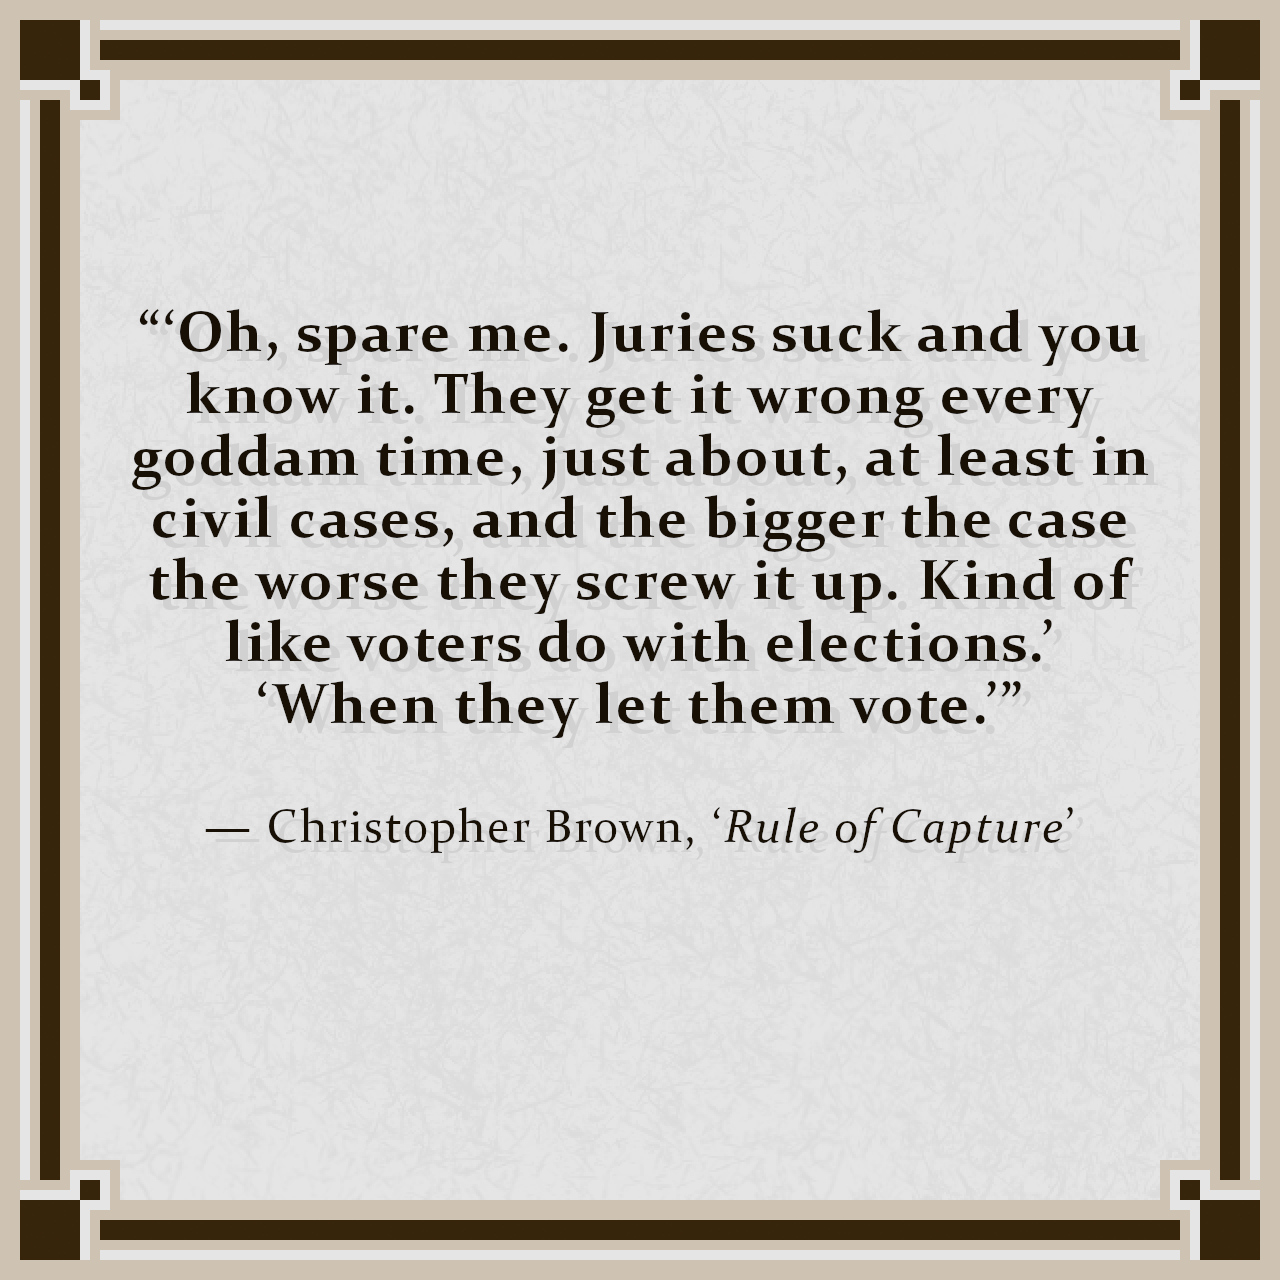 """""""'Oh, spare me. Juries suck and you know it. They get it wrong every goddam time, just about, at least in civil cases, and the bigger the case the worse they screw it up. Kind of like voters do with elections.' 'When they let them vote.'"""" — Christopher Brown, 'Rule of Capture'"""